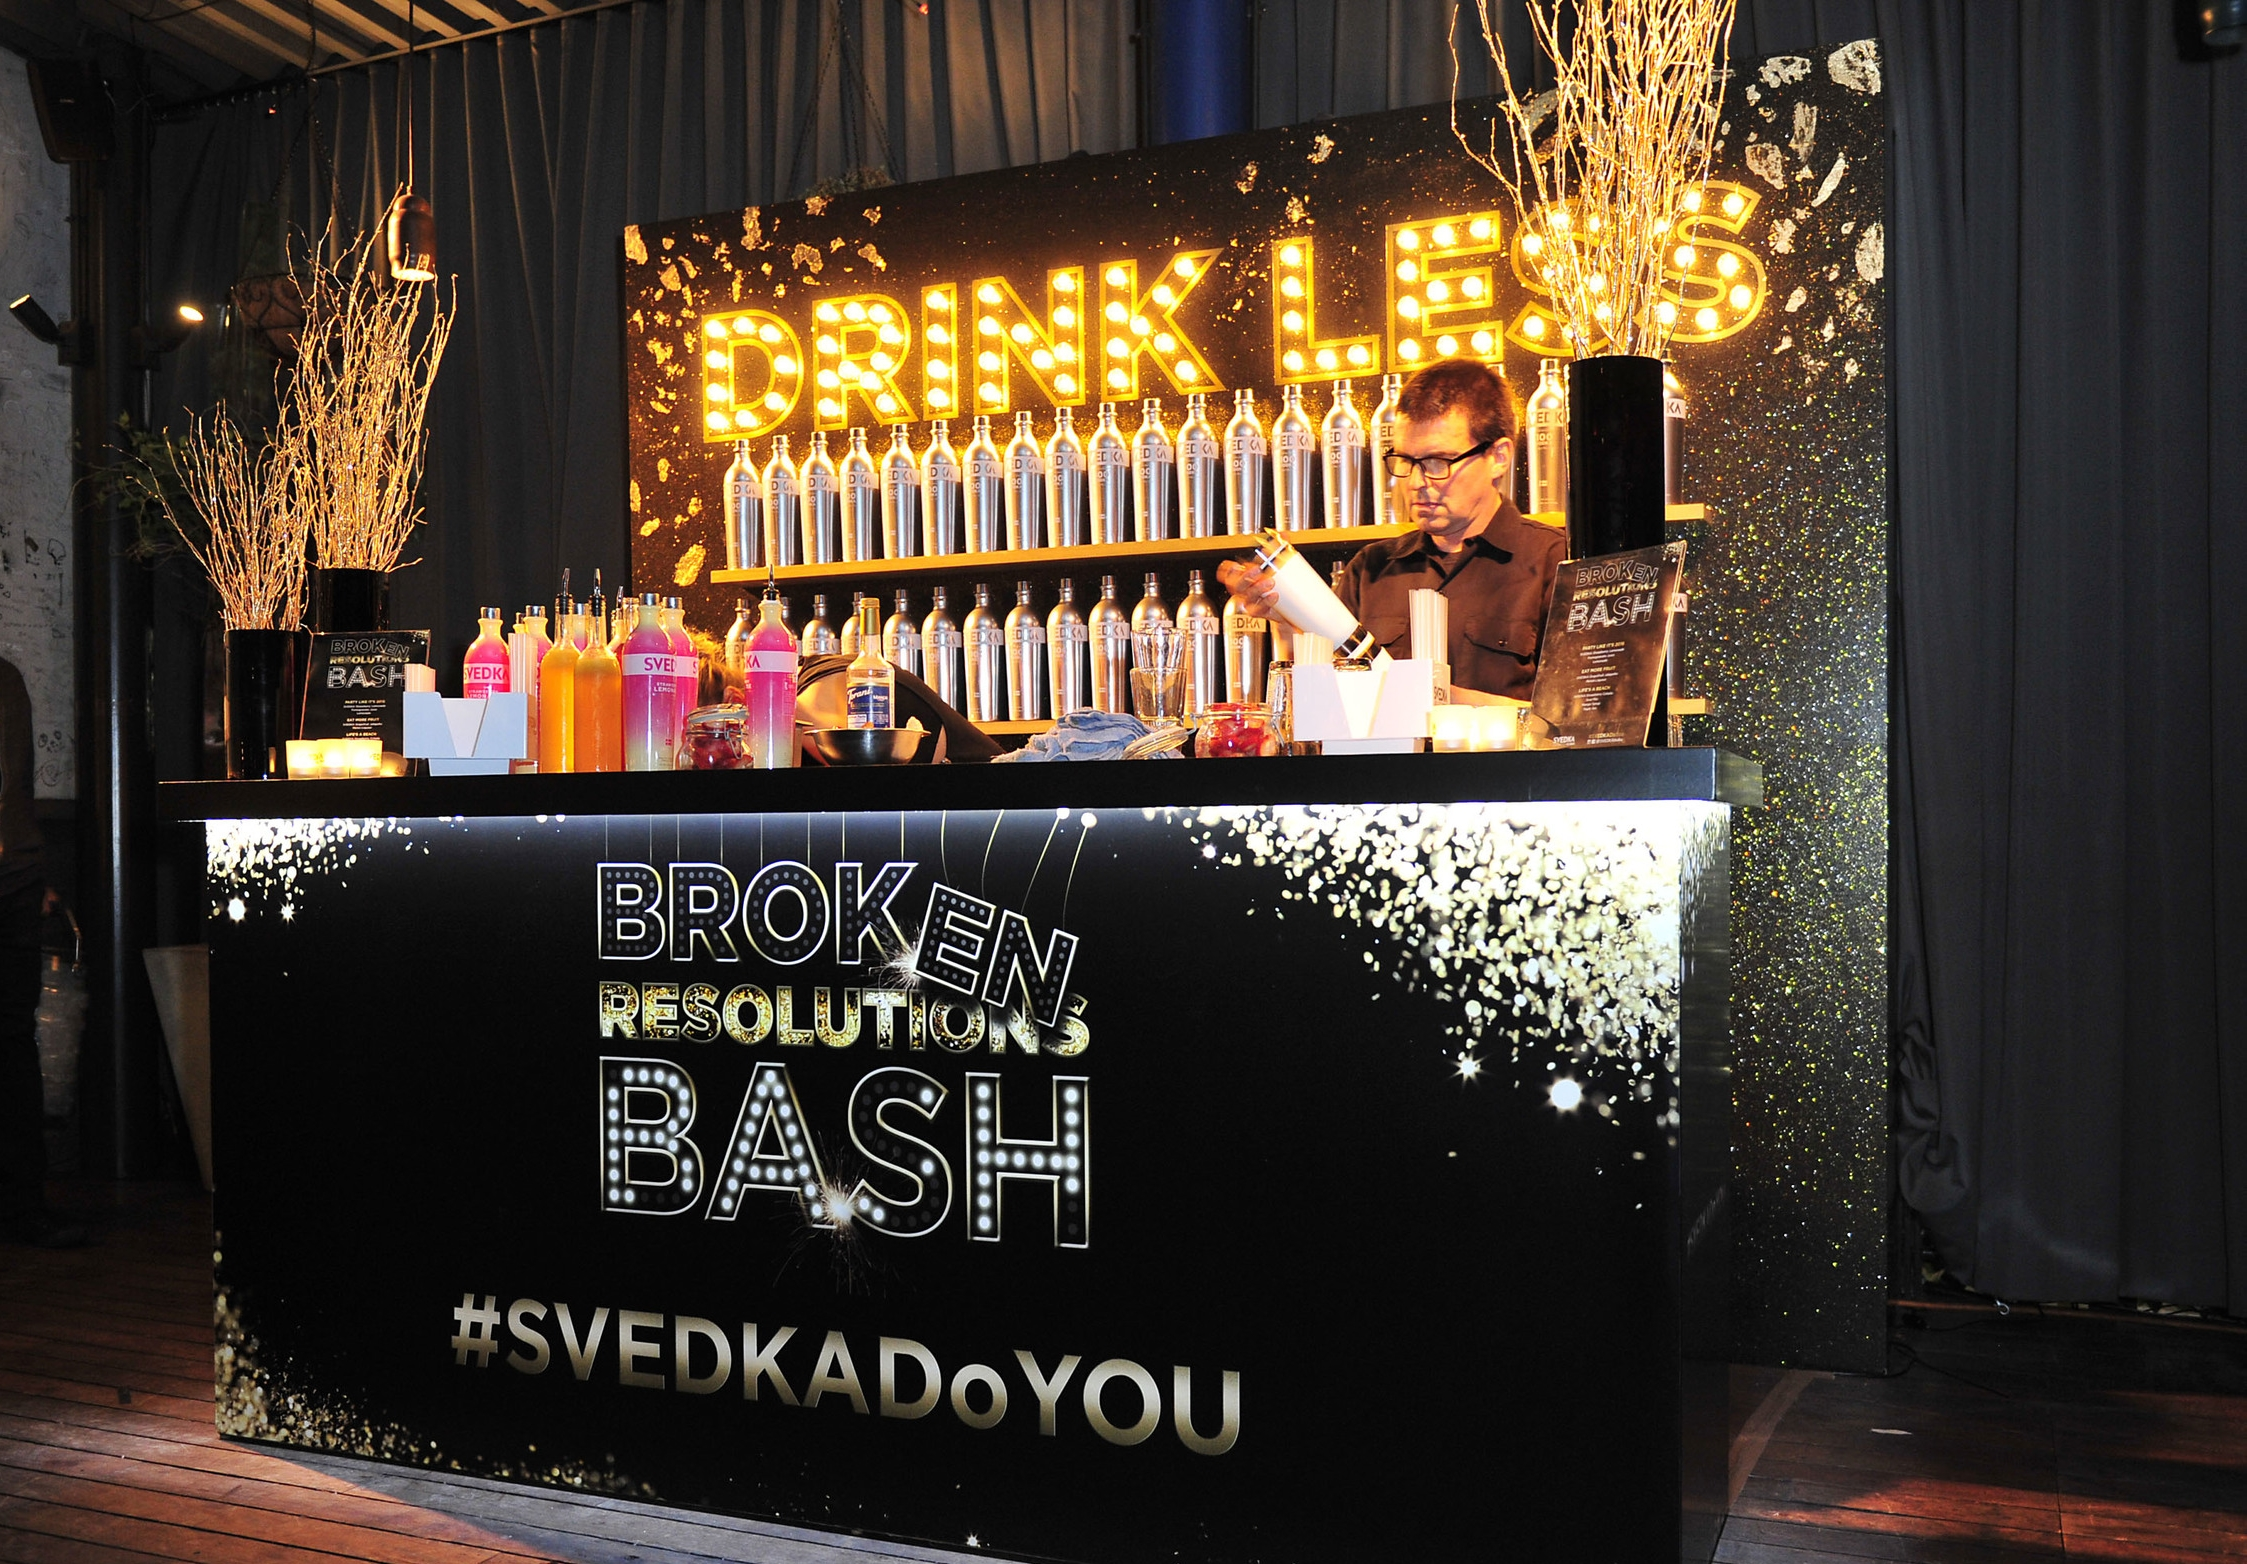 Svedka Vodka's Annual Winter Event